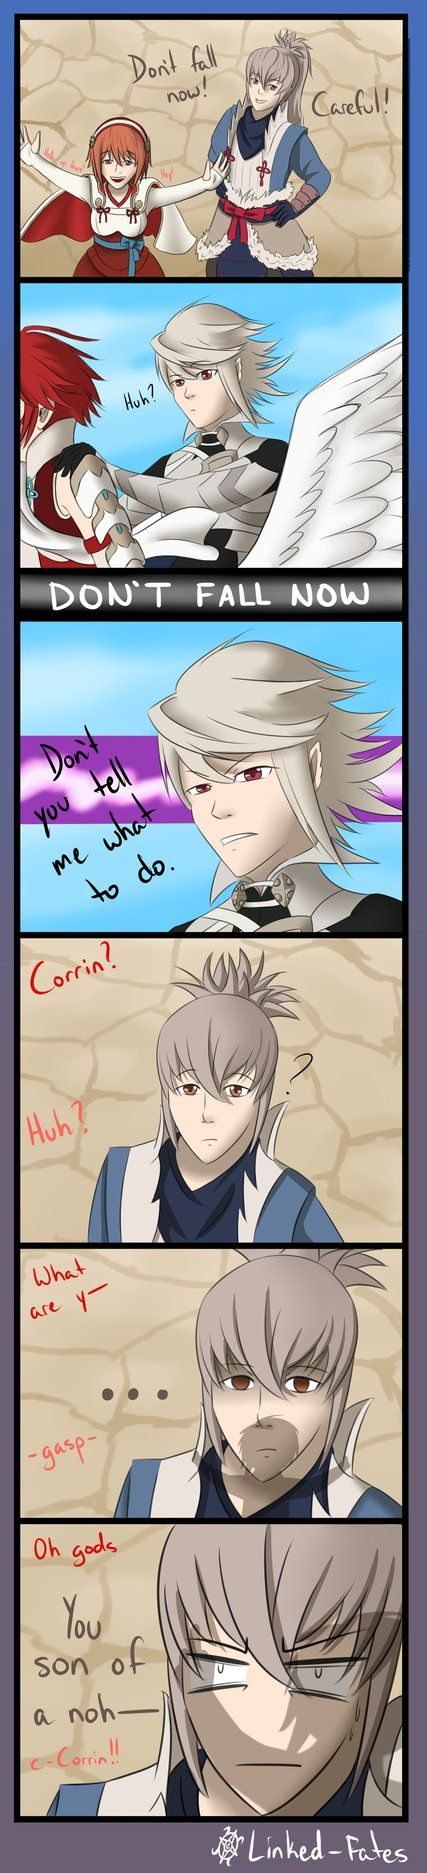 Don't fall now, Corrin by Linked-Fates.deviantart.com on @DeviantArt